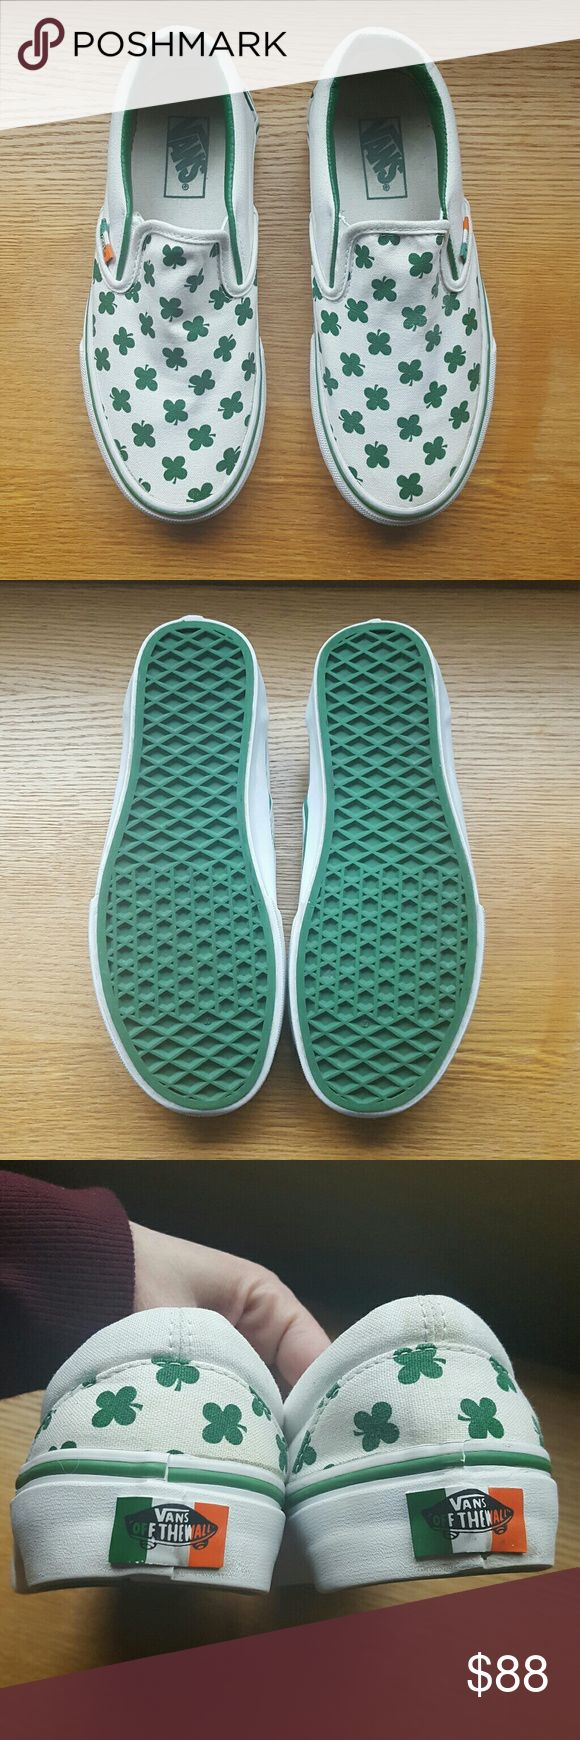 """VANS """"Erin go braugh"""" Leprechaun Grn/TrWht W6/M4.5 EUC""""Rare/HTF""""VANS Limited ReleaseEdition Erin Go Braugh Leprechaun green/true white Classic Slip on. Canvas upper featuring four leafed clovers all over, white rubber outsole with Leprechaun Green foxing stripe.""""Erin go braugh"""" is a Gaelic phrase and translated means """"Ireland forever"""" and was/is a rebel yell for allegiance to the country. In amazing condition after my restore and have virtually no wear. Womens size 6 and mens 4.5. Reasonable…"""